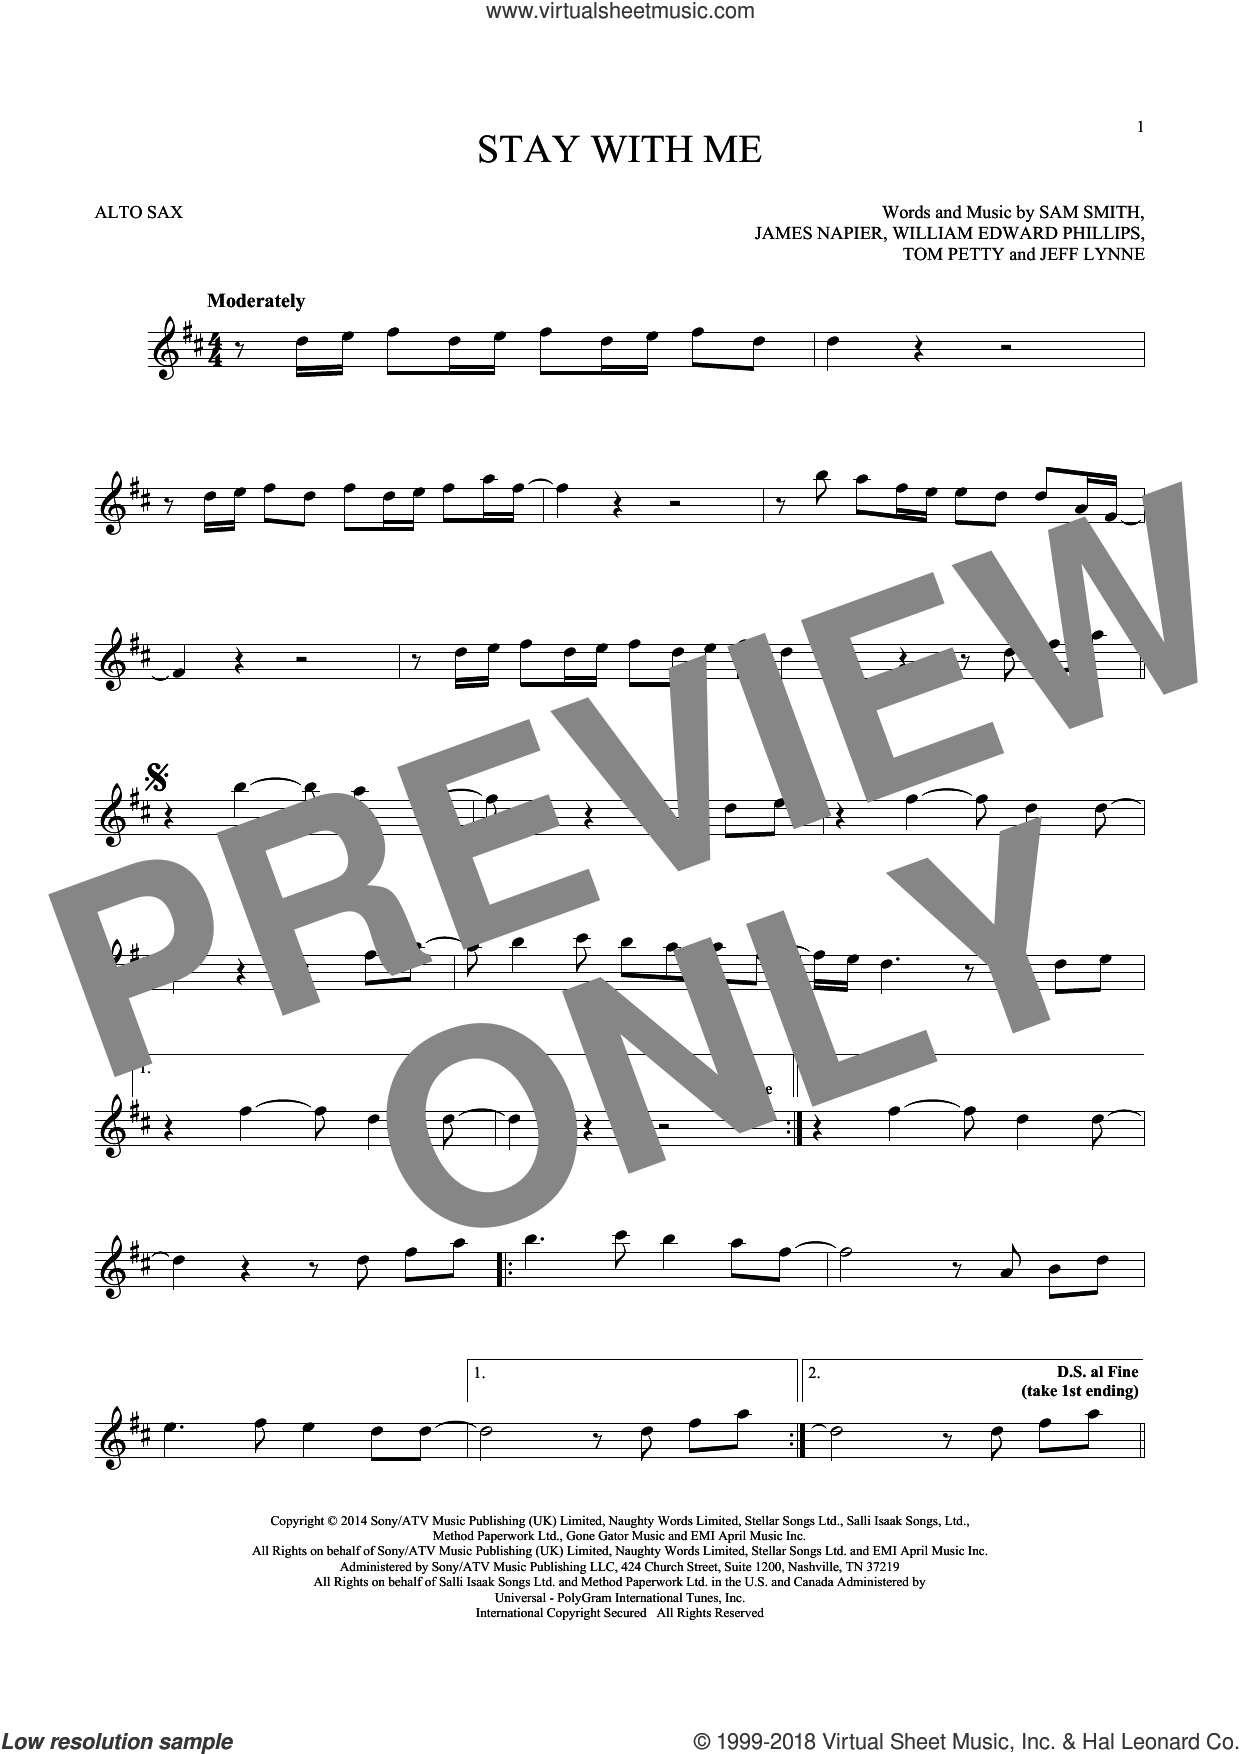 Stay With Me sheet music for alto saxophone solo by Sam Smith, James Napier, Jeff Lynne, Tom Petty and William Edward Phillips, intermediate skill level